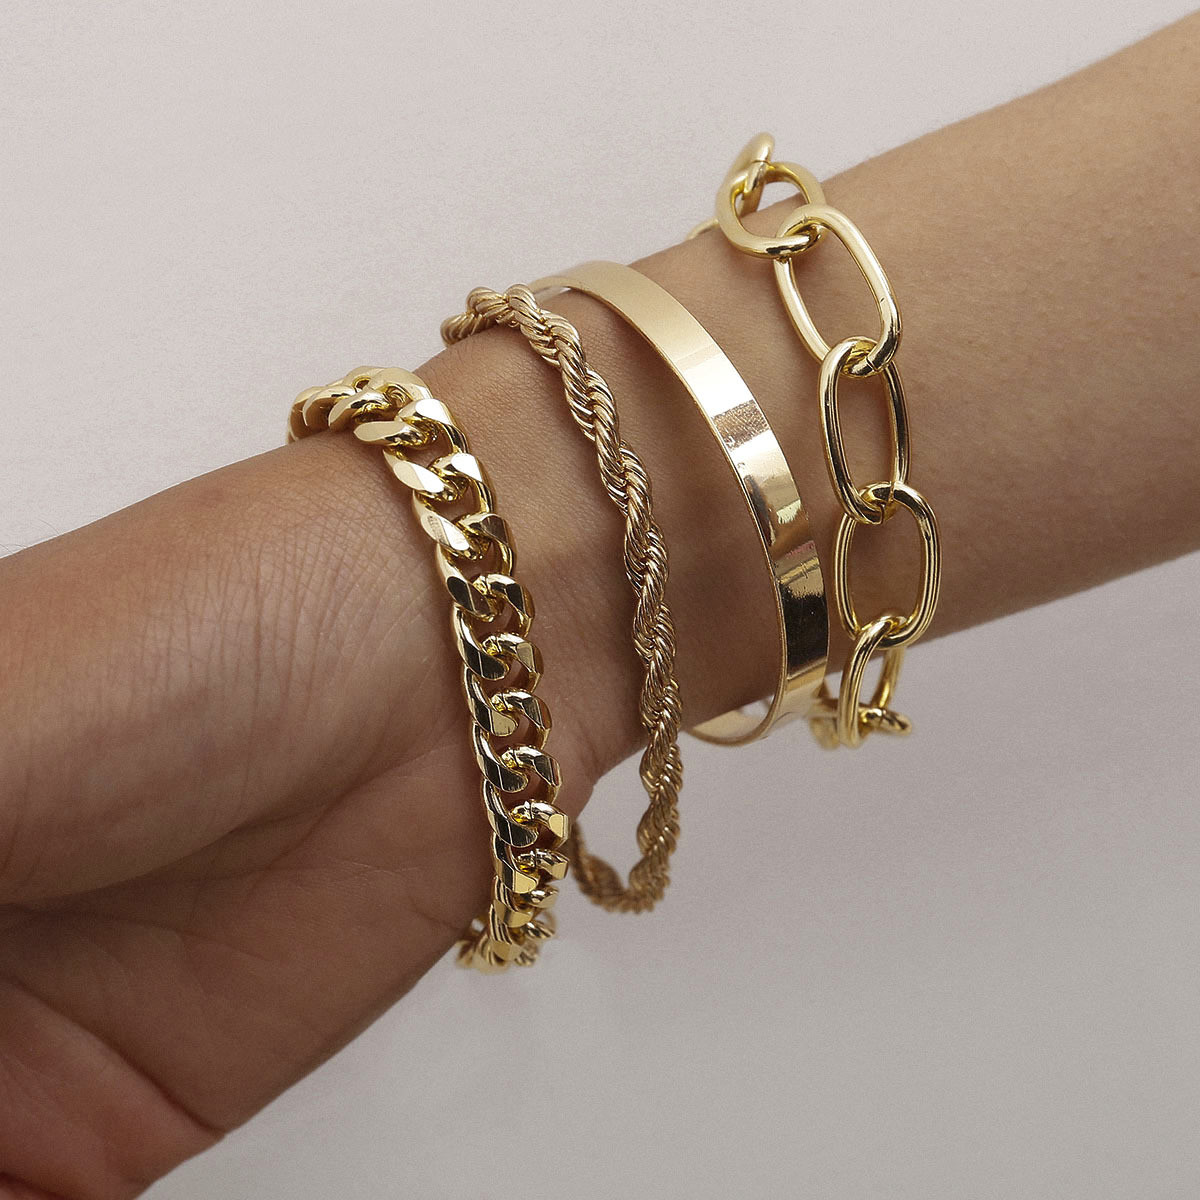 Vintage 14K Gold Plated Bracelets Bangles Set Charm Gold Bracelet For Women Jewelry <strong>Accessories</strong>